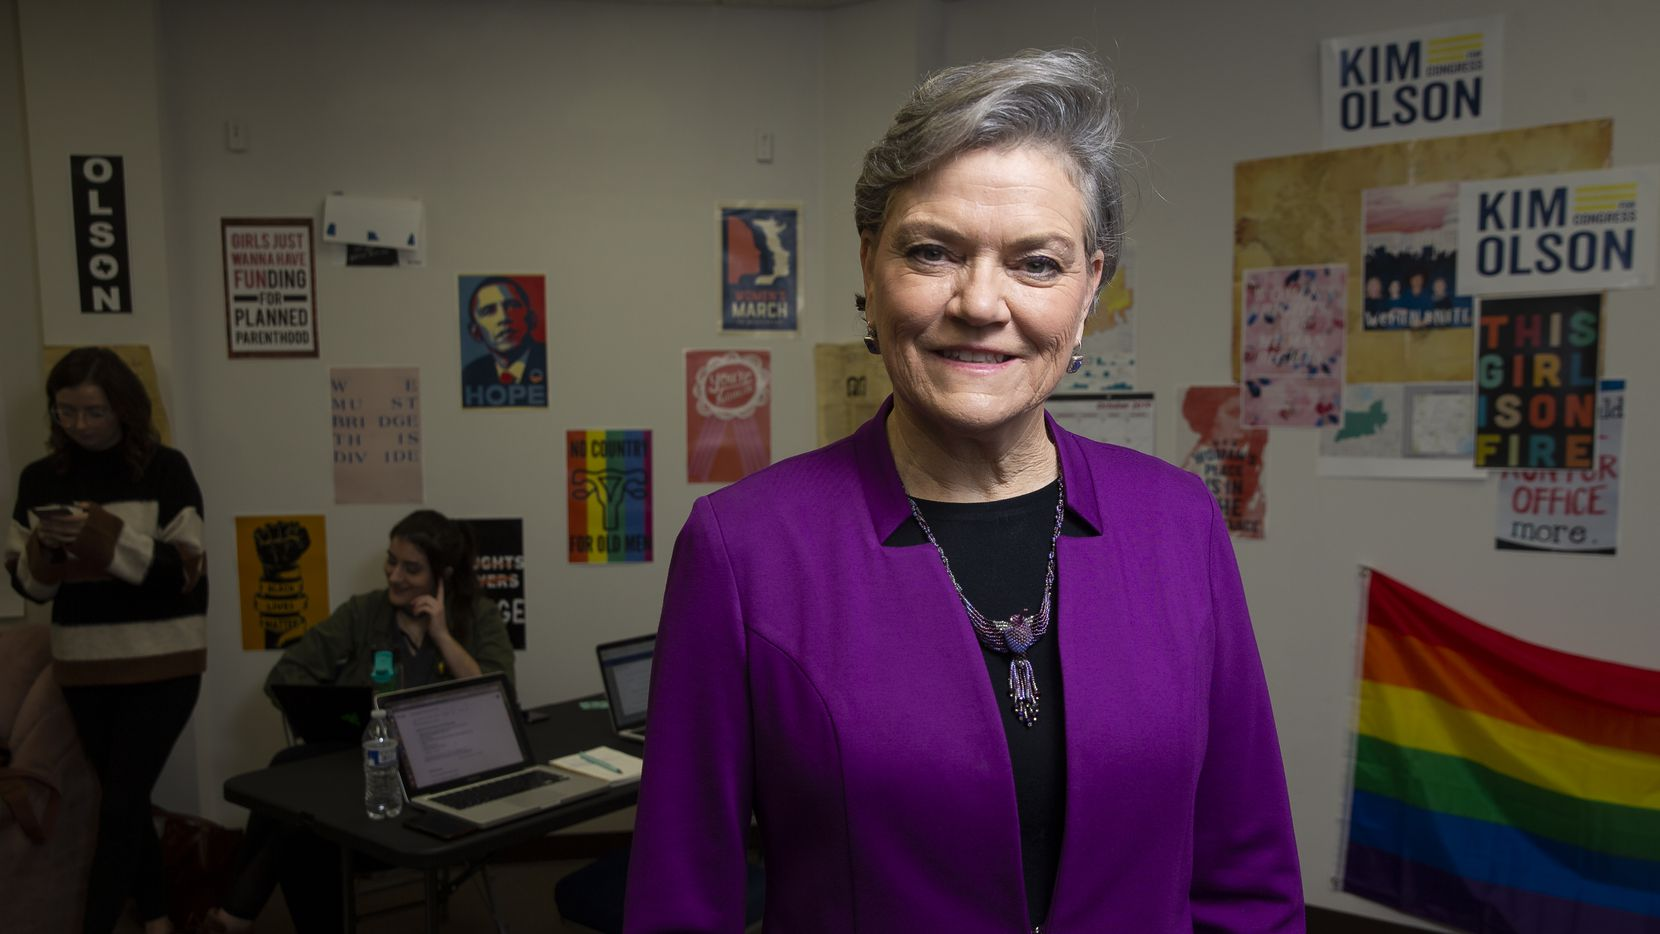 Curbing gun violence is among several issues Kim Olson has cited as reasons she's running for the 24th Congressional District.